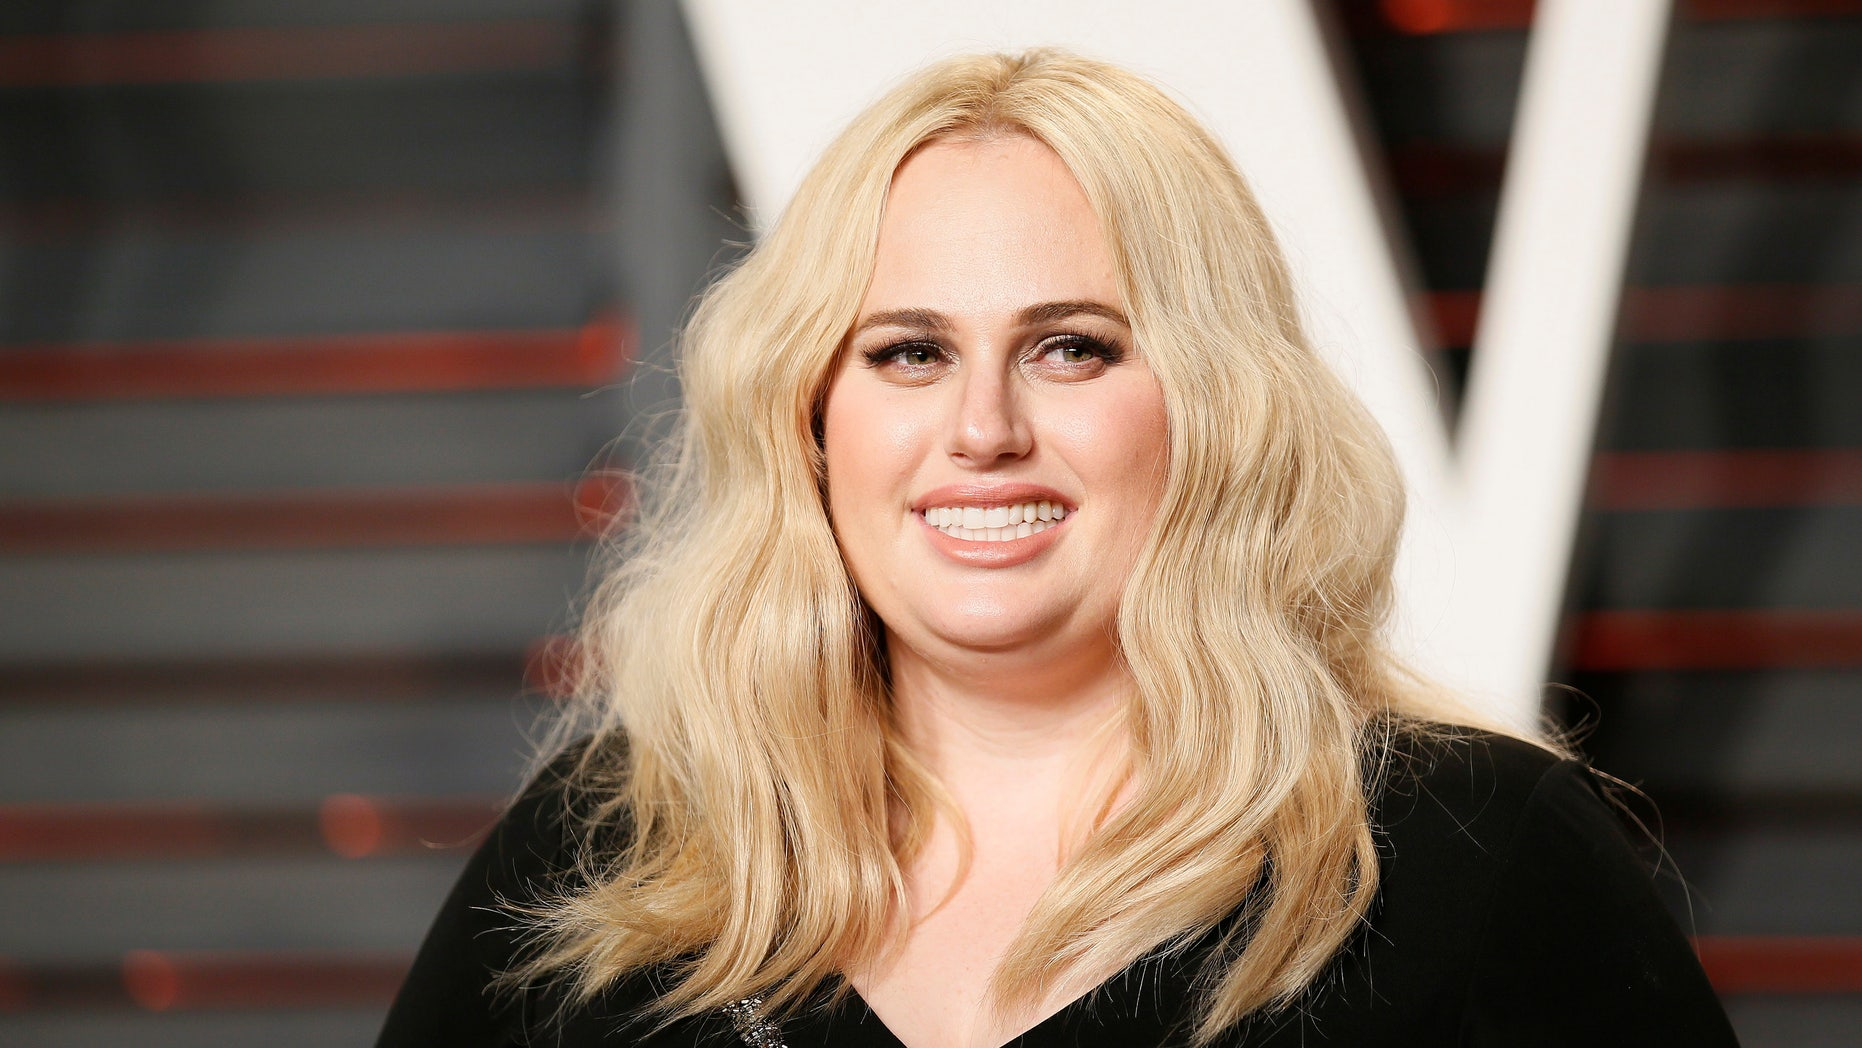 Rebel Wilson to lose millions after defamation appeal